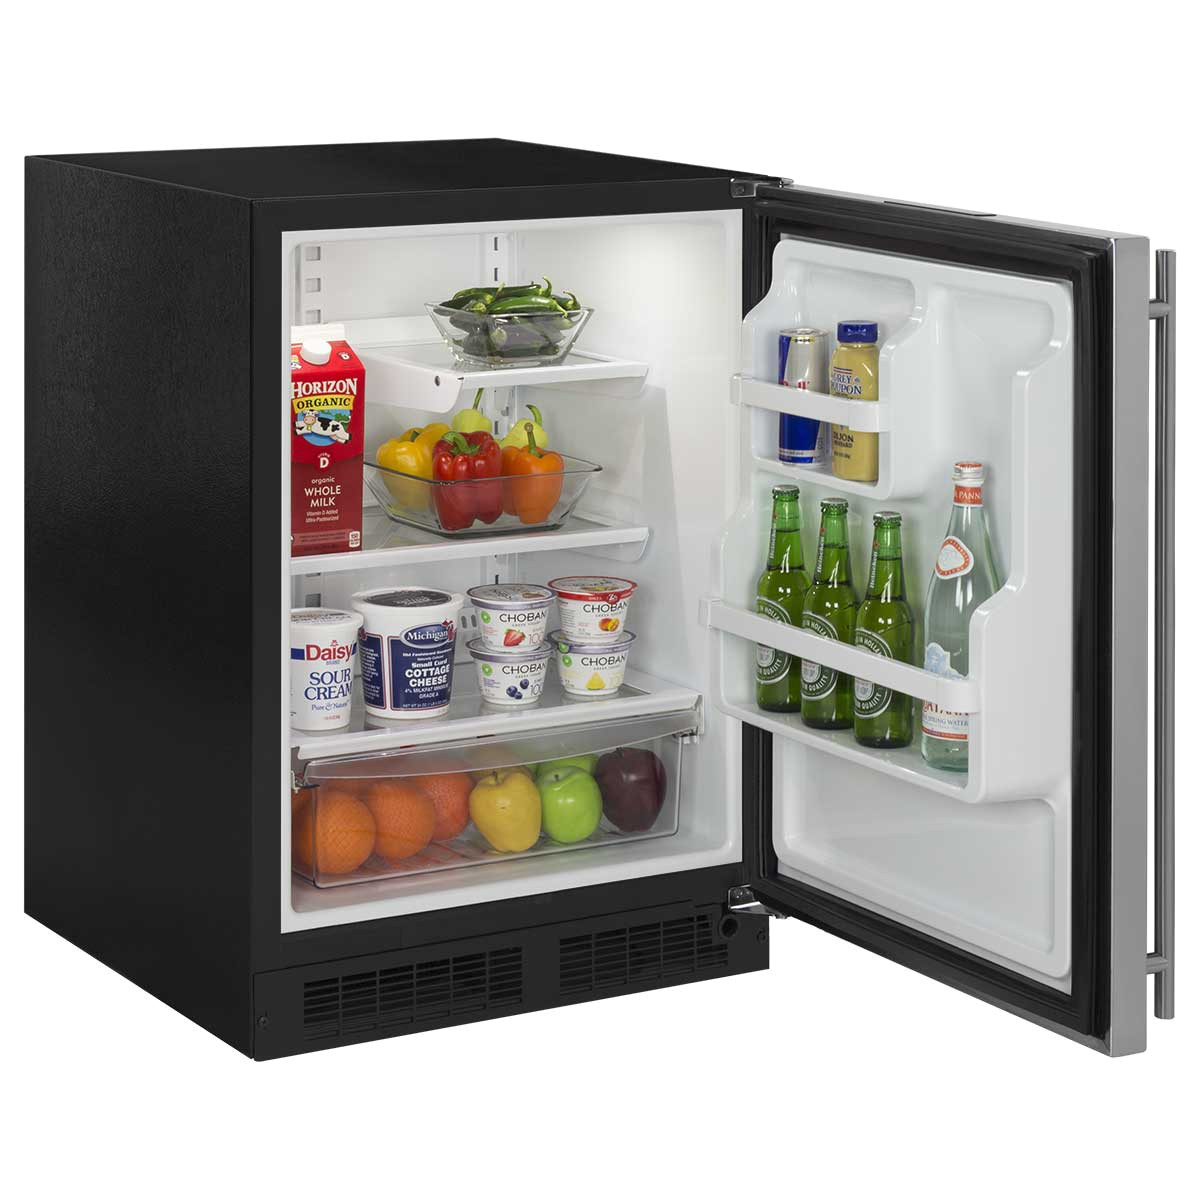 24 all refrigerator with drawer ml24ras2 a marvel undercounter refrigerator open